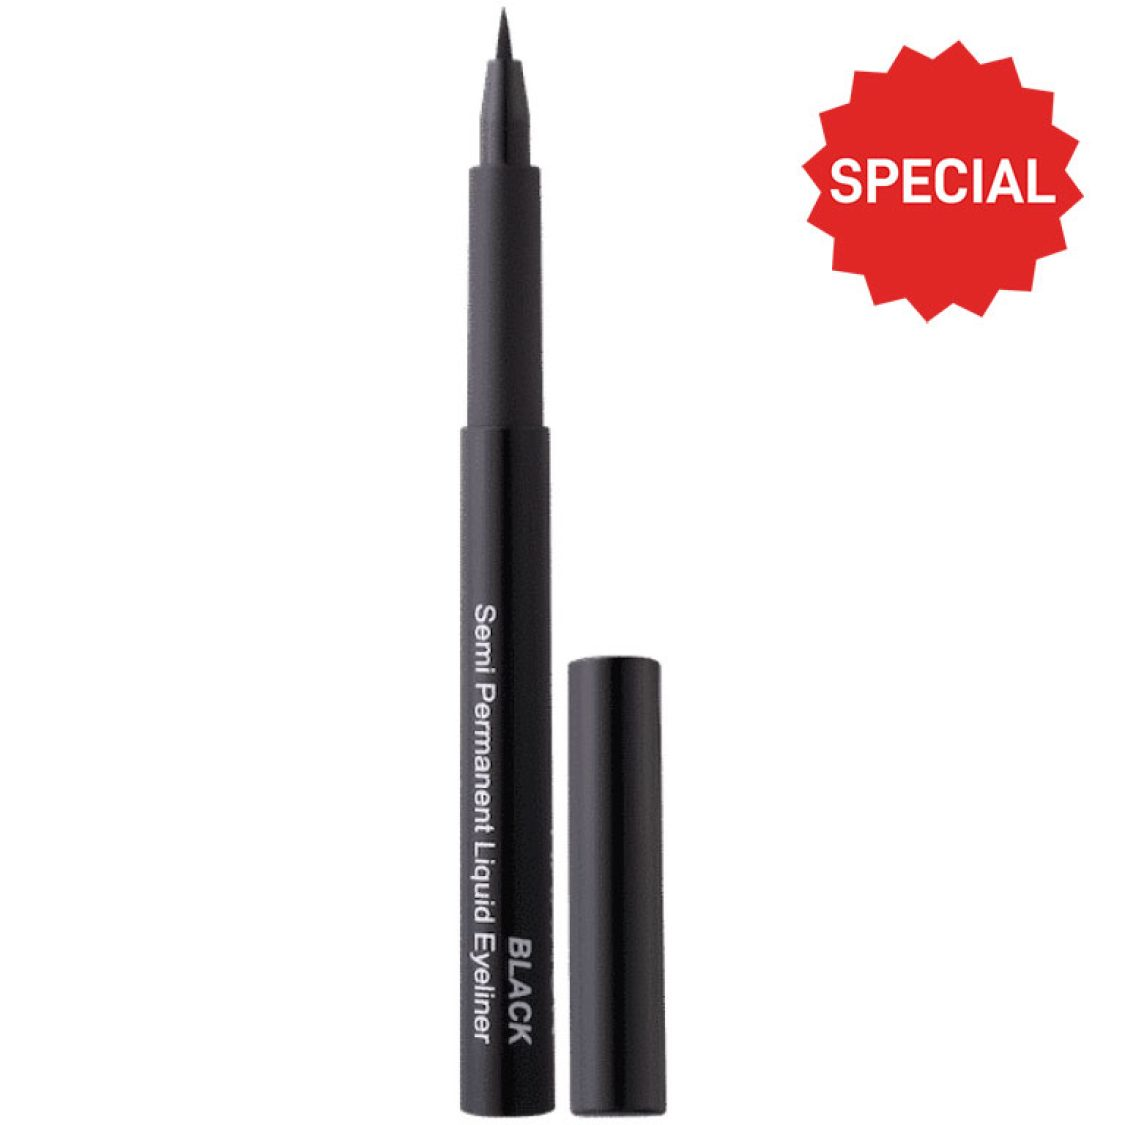 Hannon - Semi-Permanent Liquid Eyeliner - Black